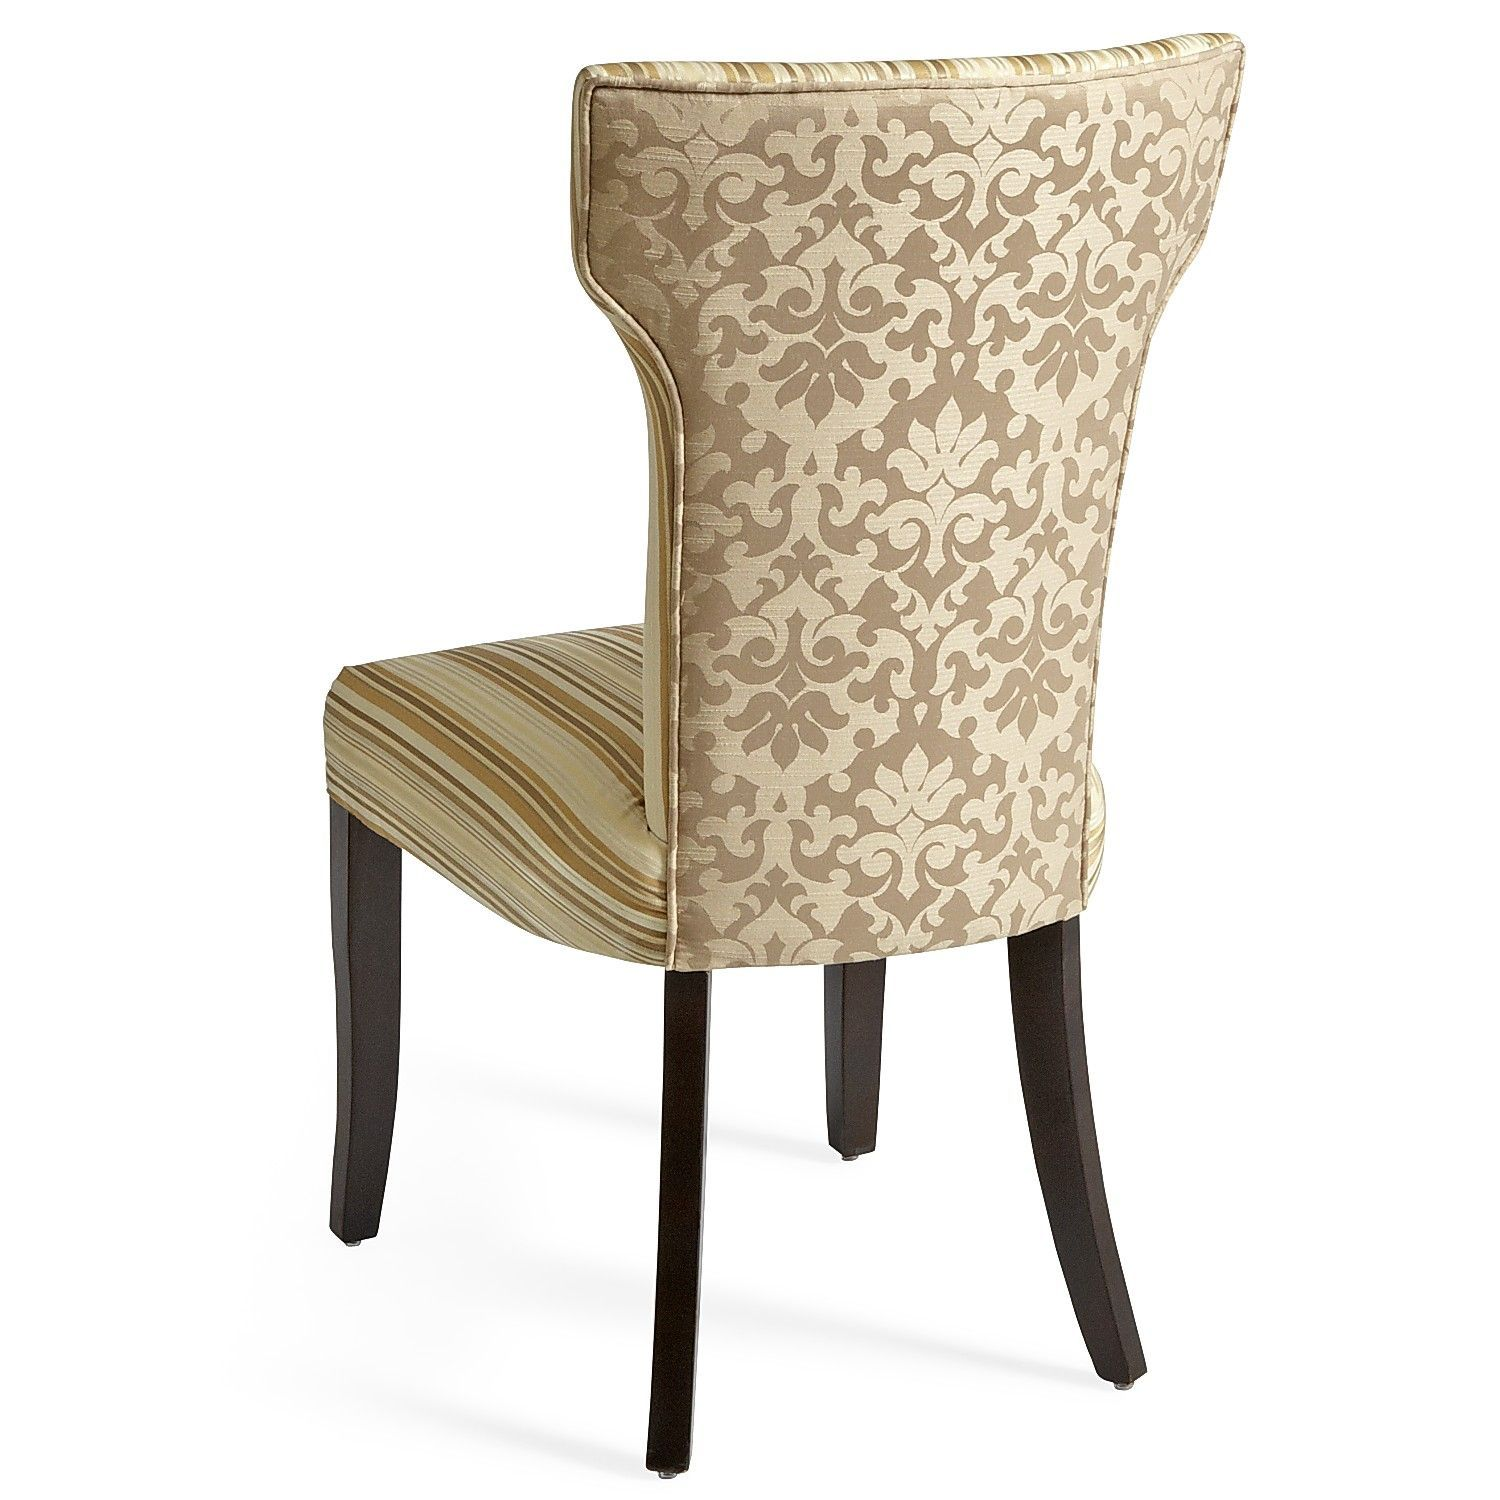 Carmilla Dining Chair Ivory Stripe 169 Chair, Dining